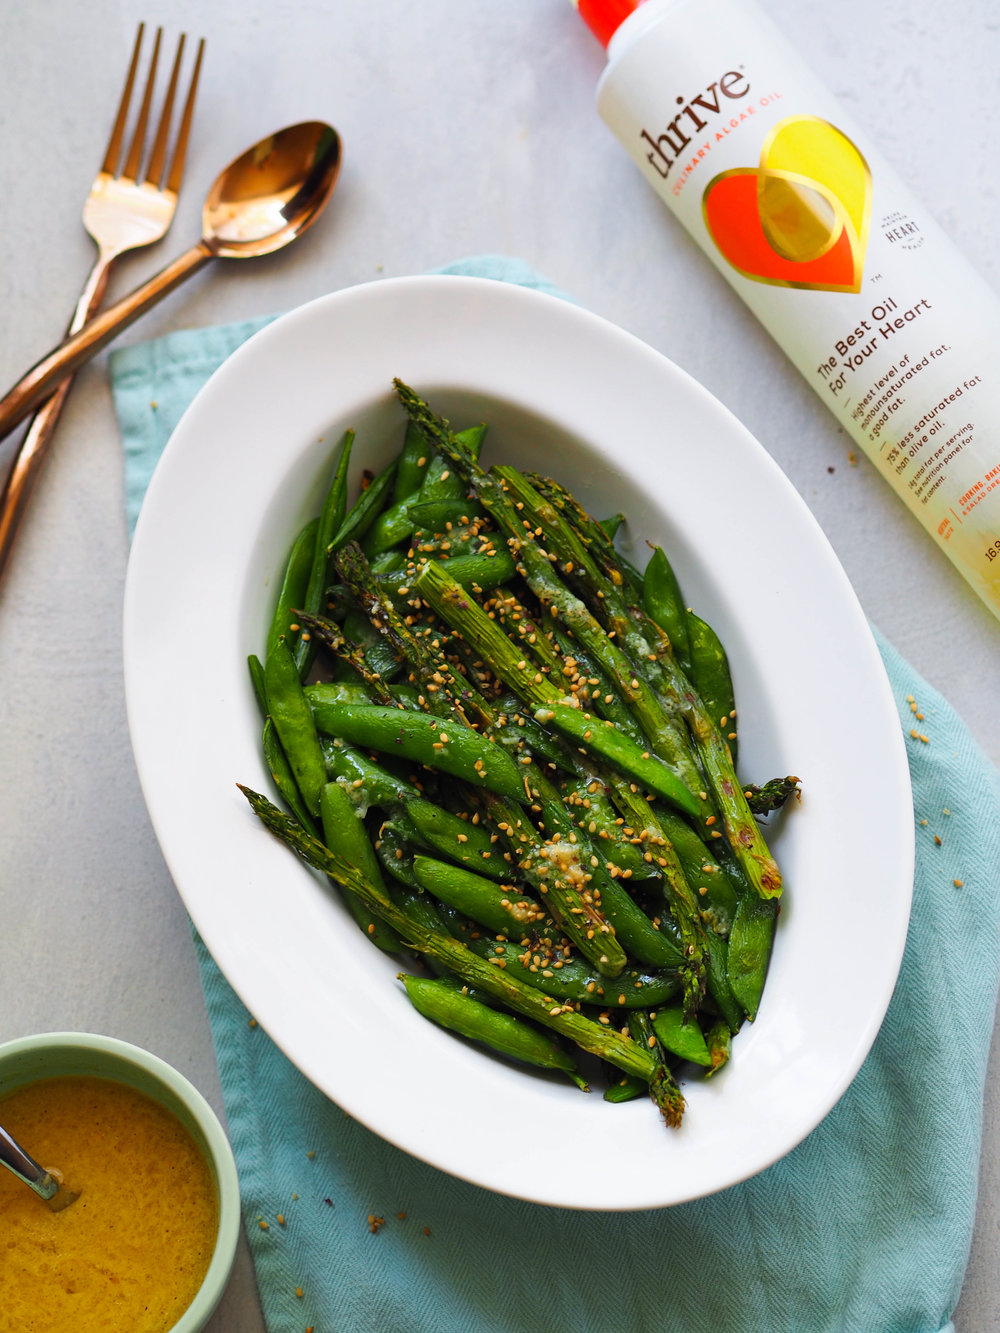 Grilled Spring Vegetables with Miso-Lime Dressing! Throw asparagus and snap peas on the grill and drizzle with a probiotic rich miso-lime dressing for an easy seasonal side! #vegan #vegetarian #sidedish #asparagus #grilling #probiotic